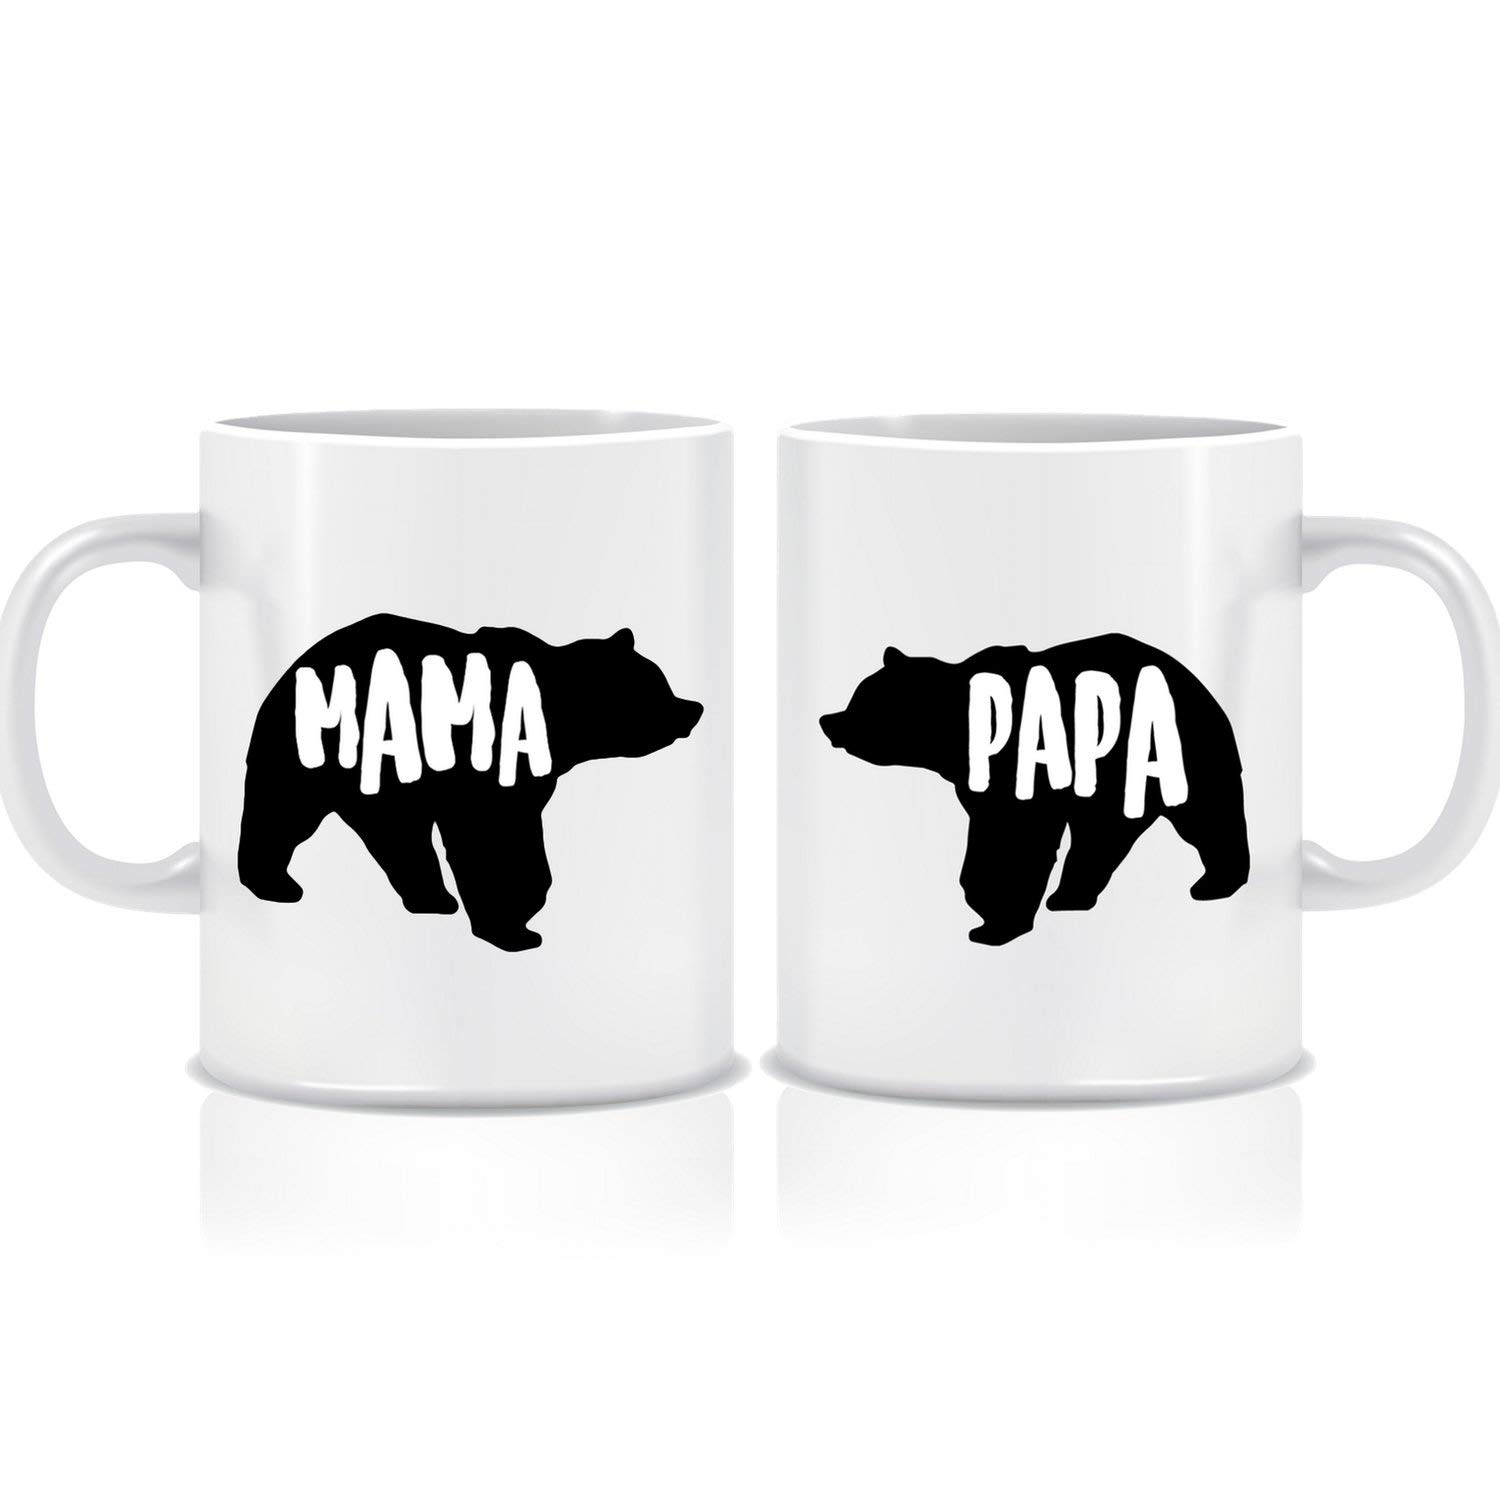 American Wit Novelty Mug Set for Mom and Dad, 11 oz. Mama & Papa Bear Mugs, Unique His & Hers Ceramic Couple Mug, His & Her White Coffee Mug, Funny Ceramic Mug Sets for Mother's Day by